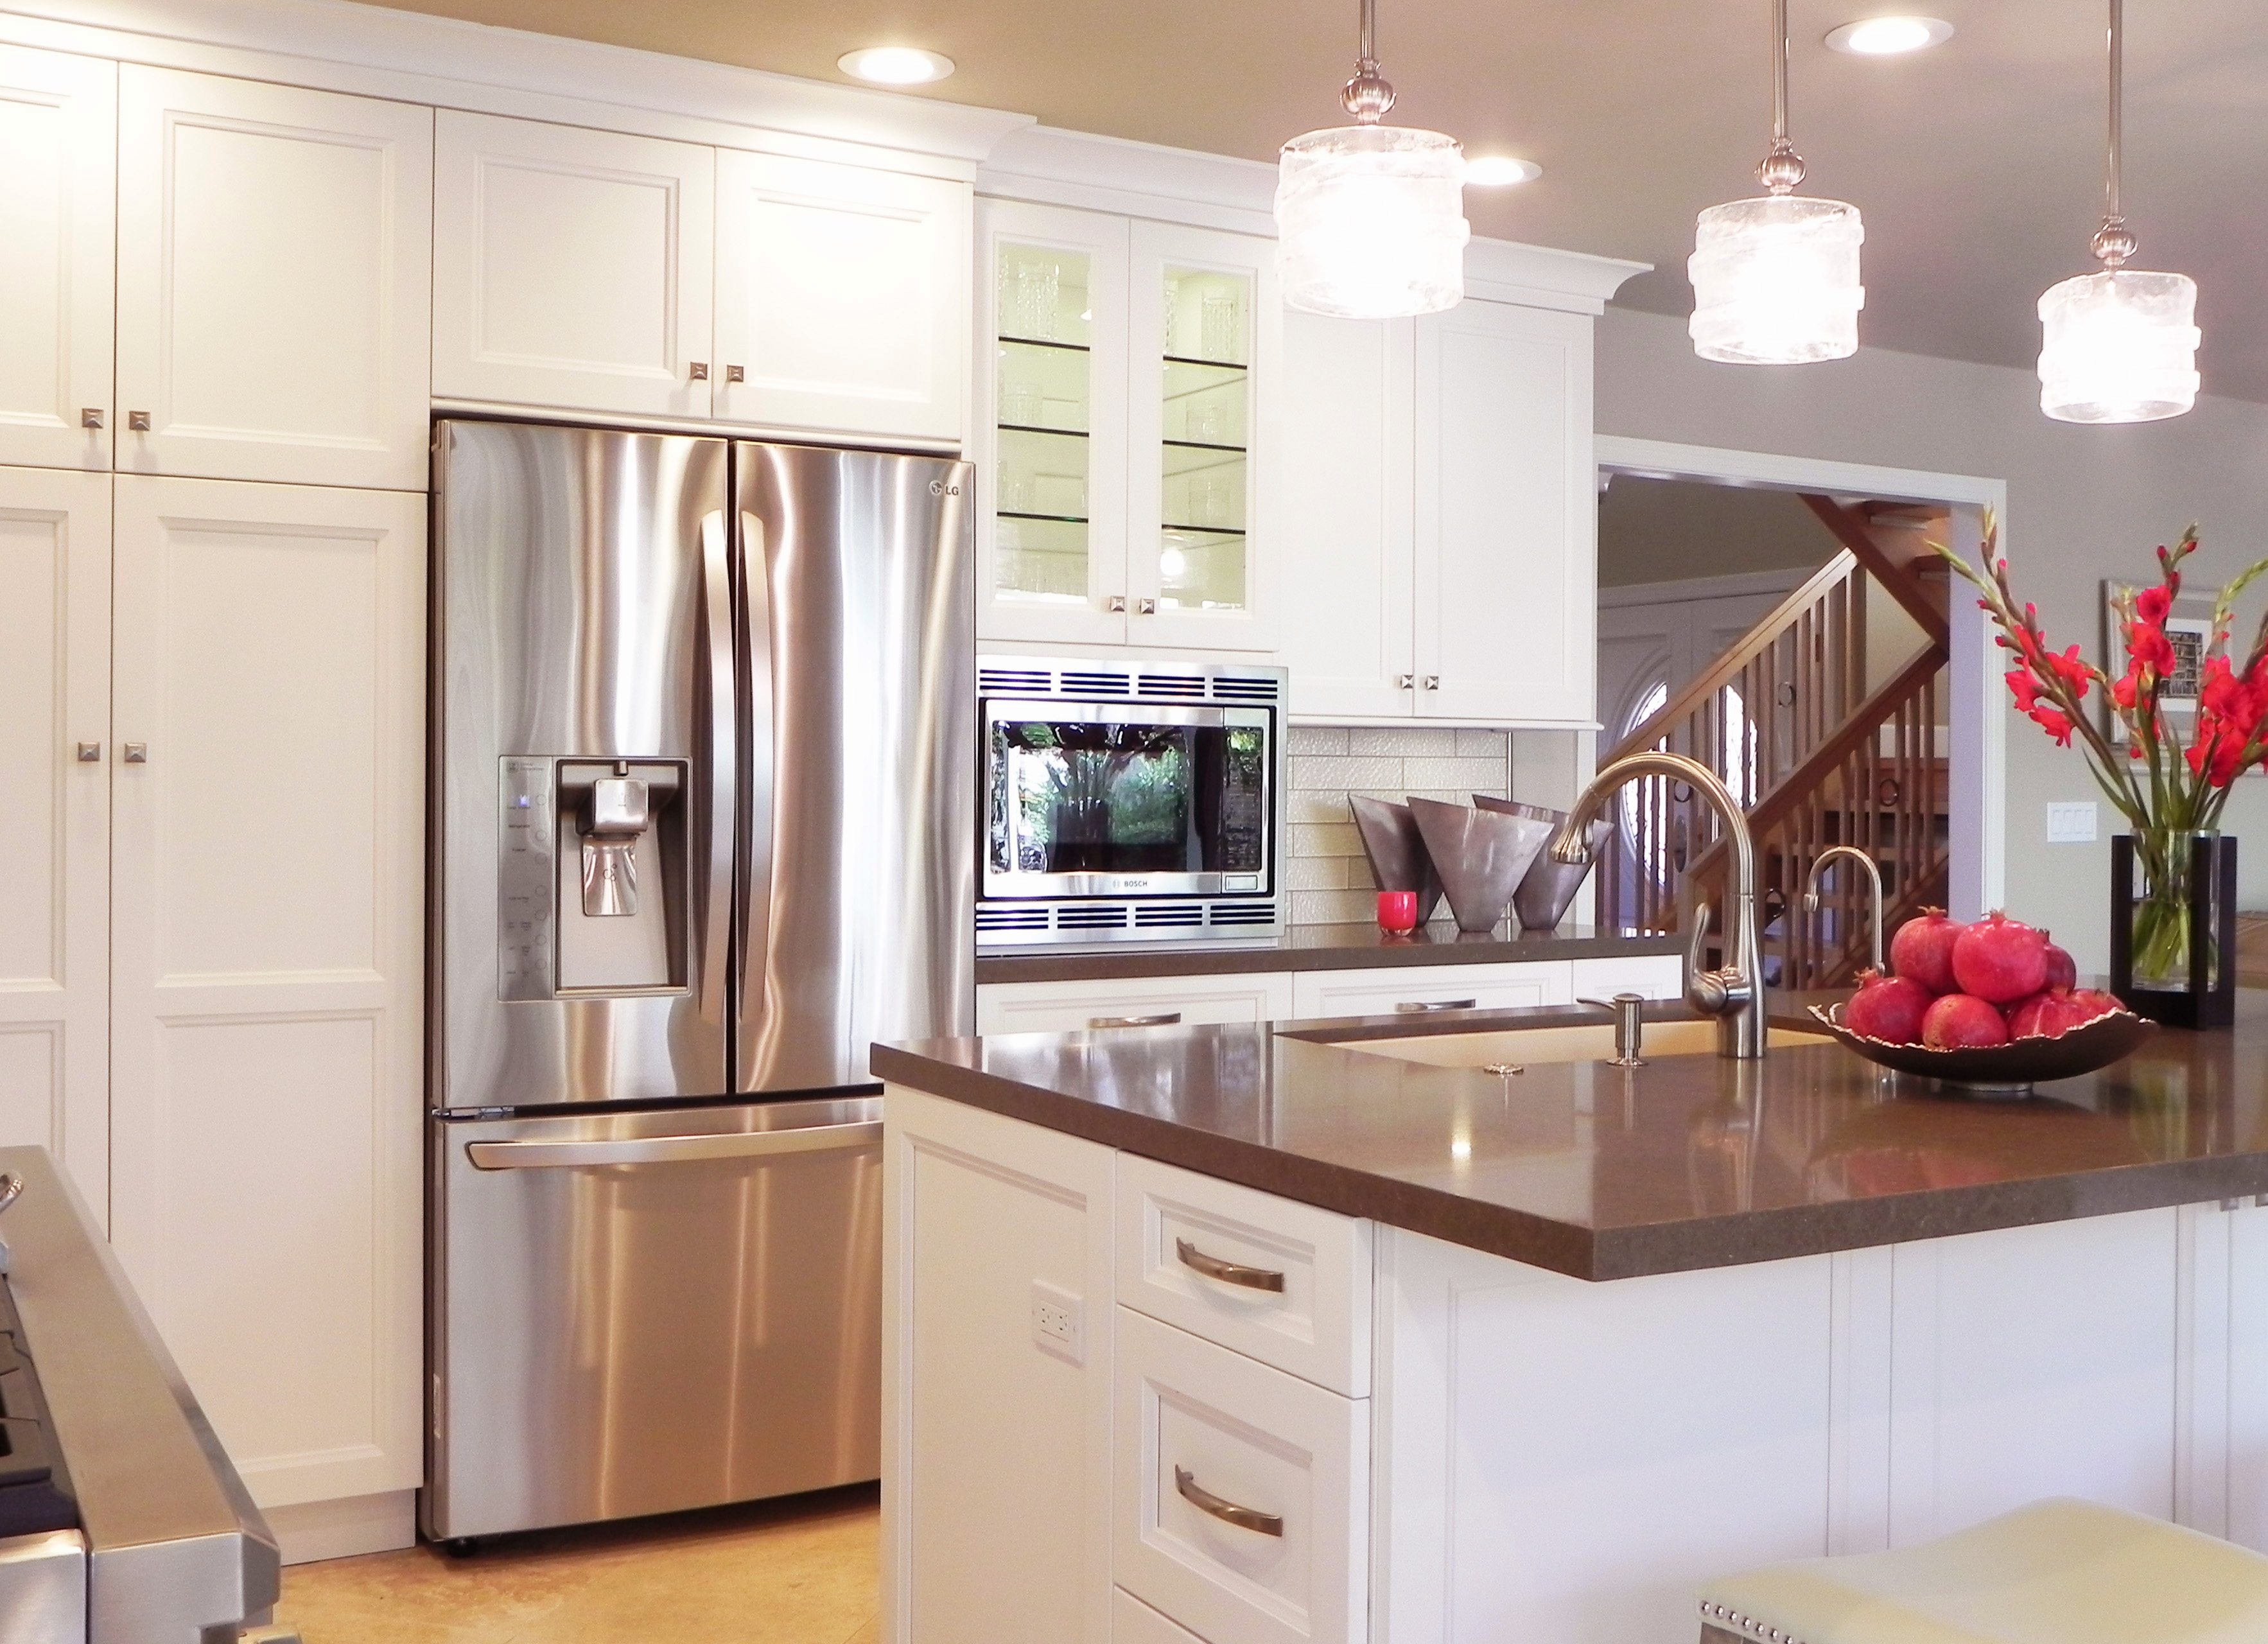 Cheapest Place To Buy Kitchen Cabinets Cabinets Cheap